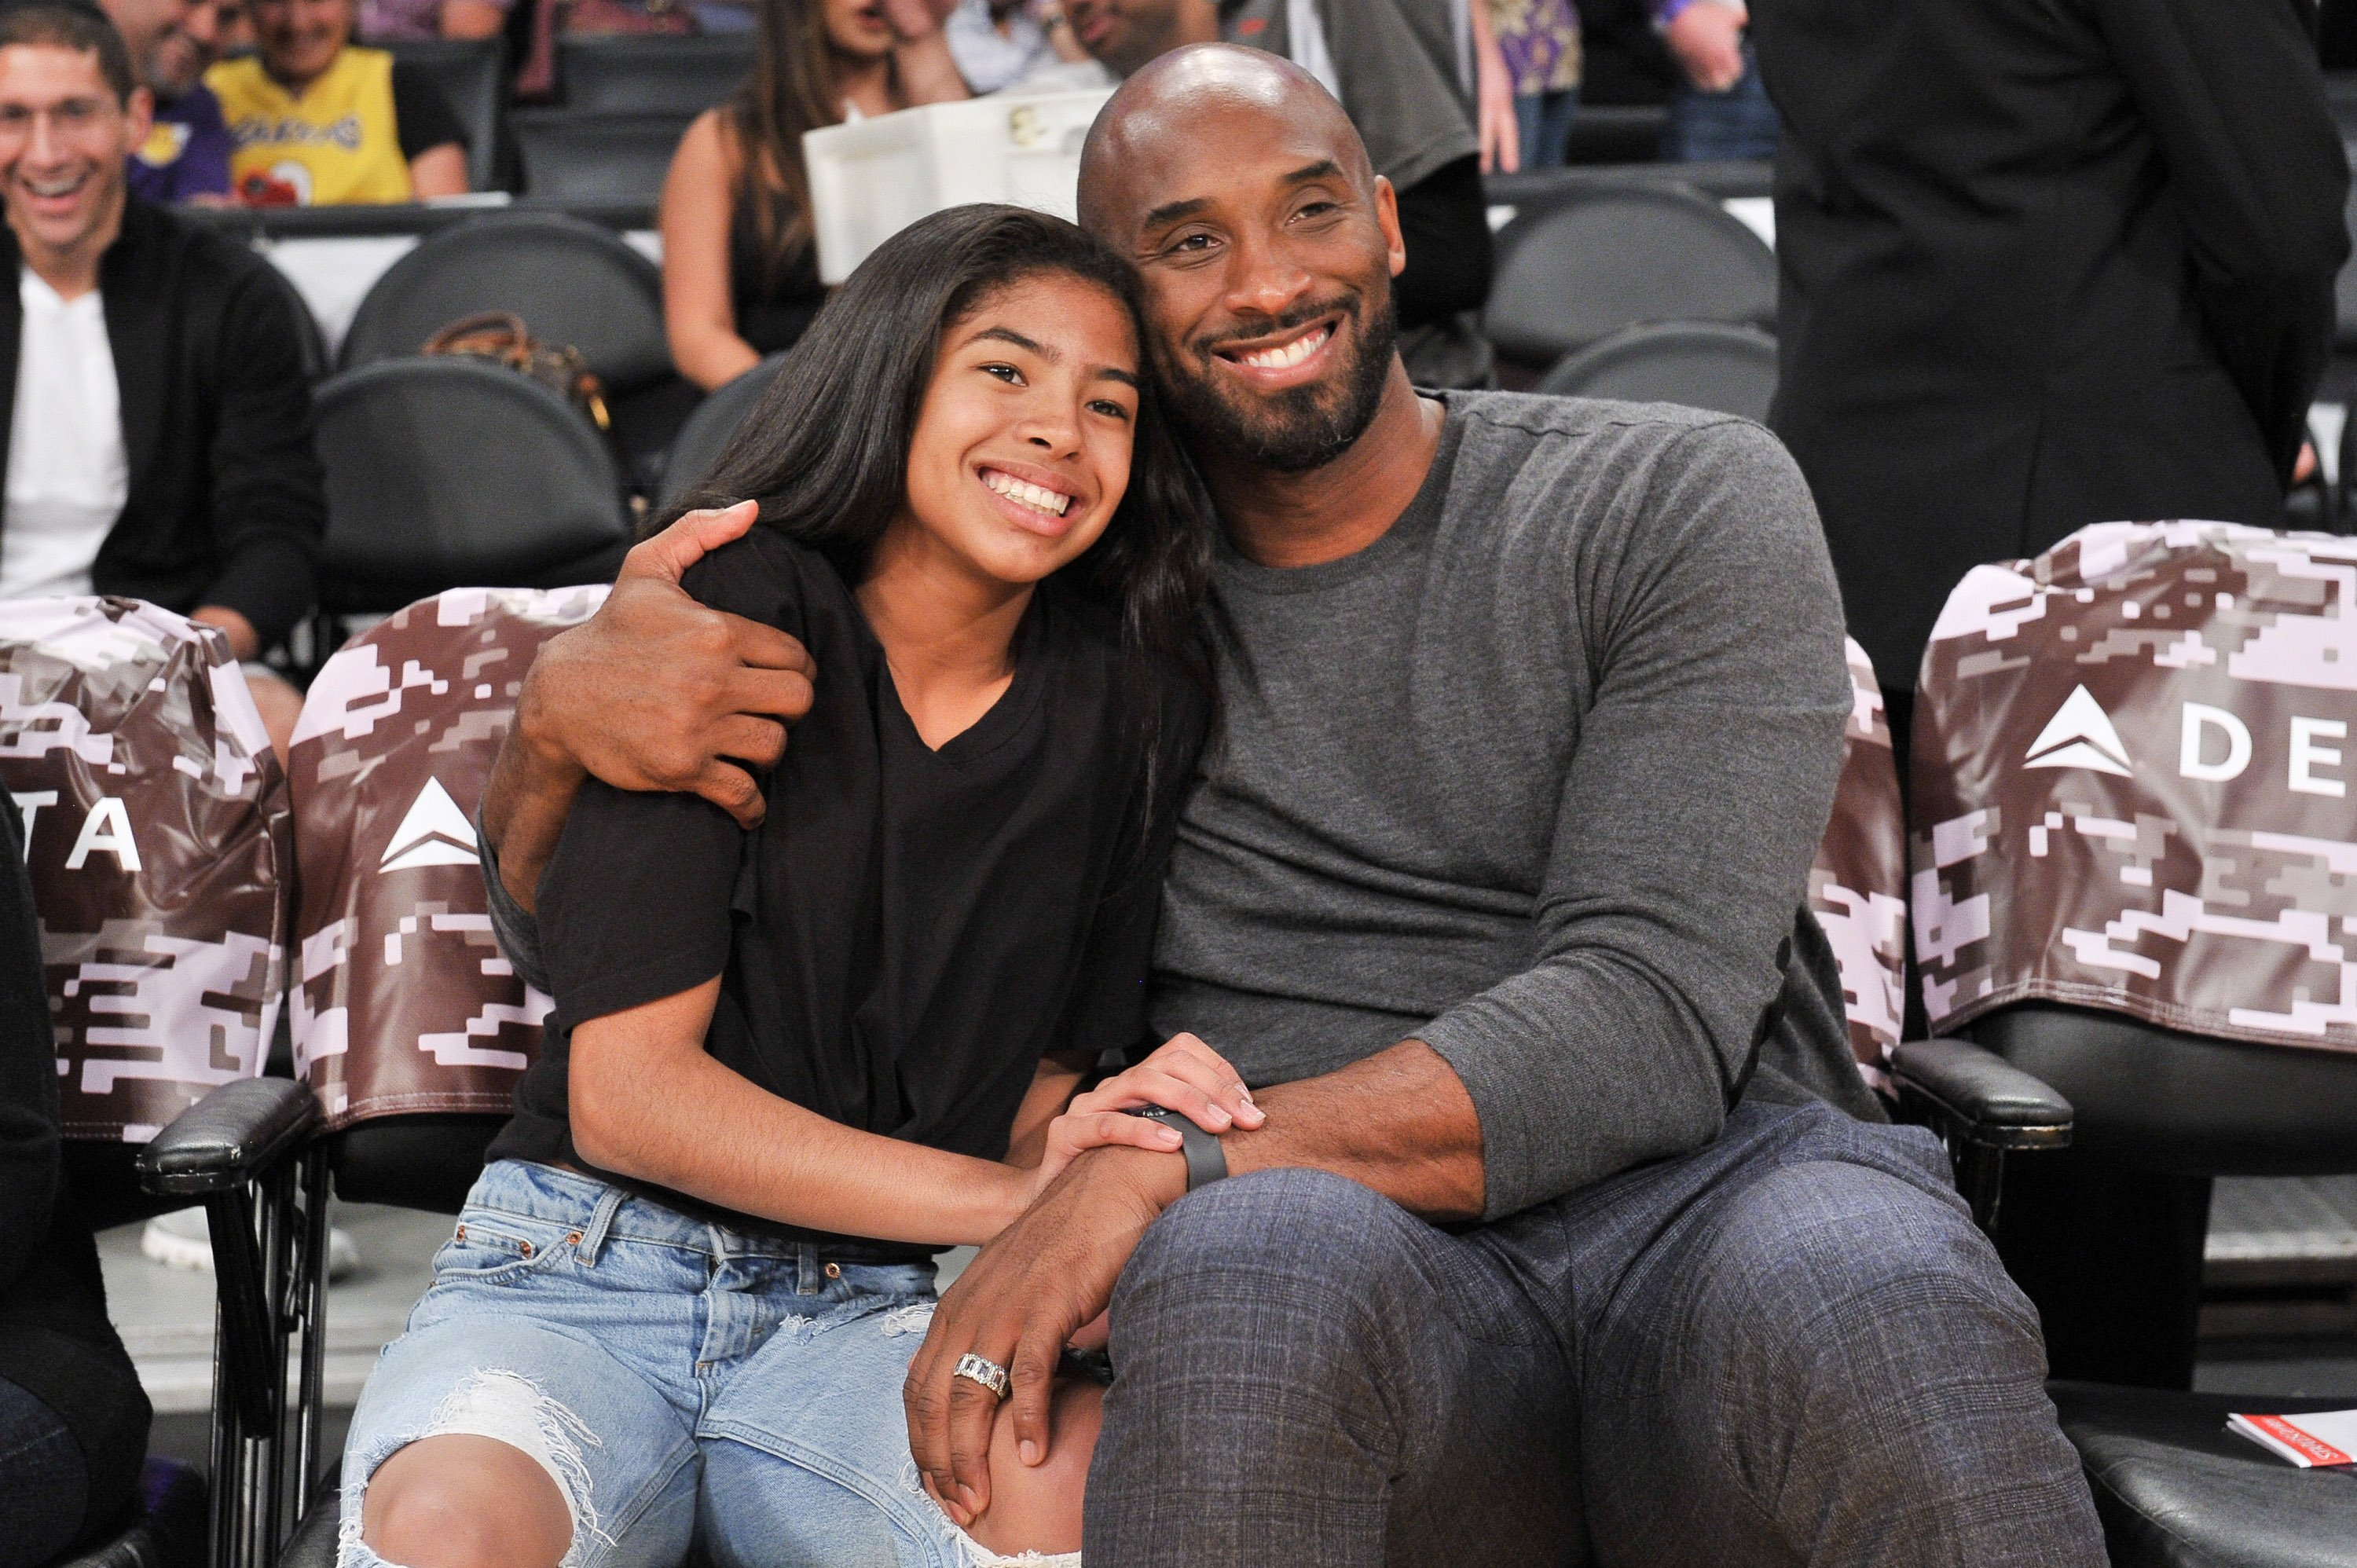 Kobe and Gianna Bryant at a Los Angeles Lakers and Atlanta Hawks basketball game at Staples Center on November 17, 2019. | Photo: Getty Images